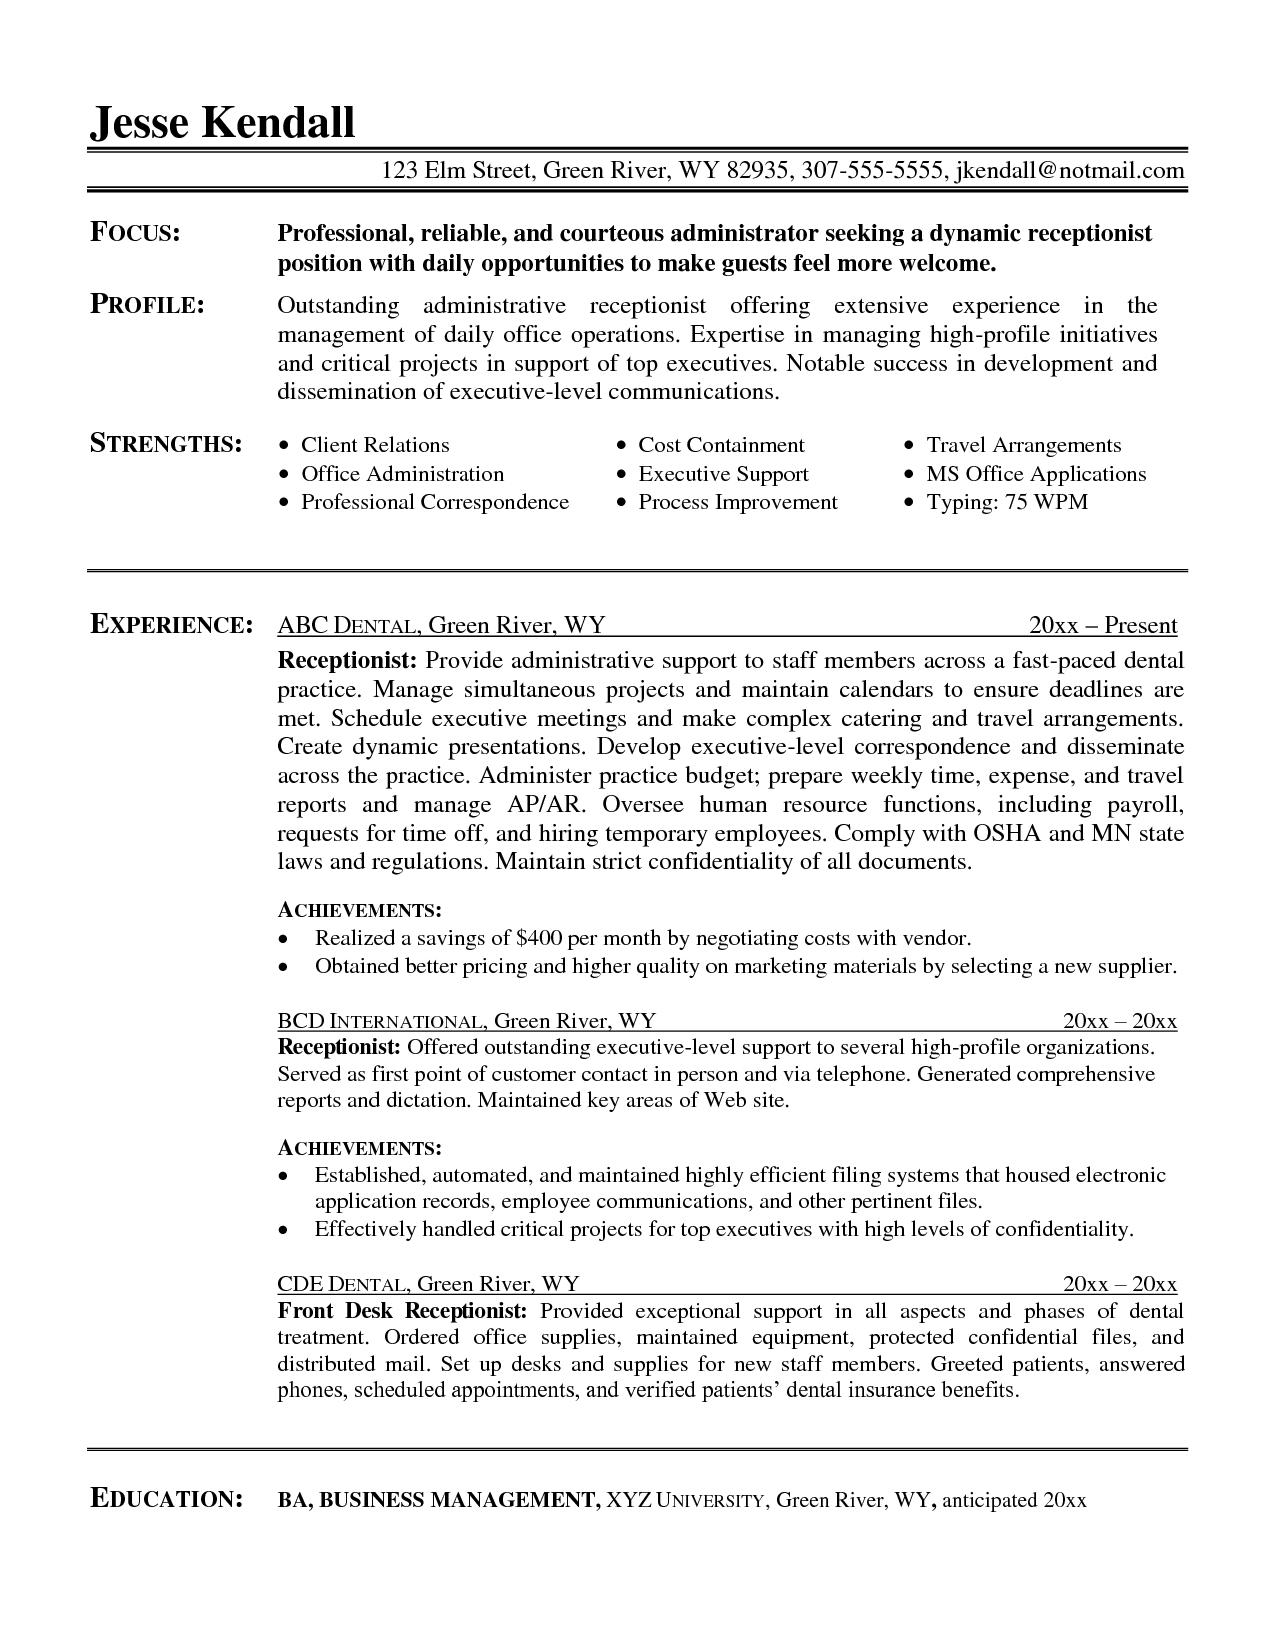 Receptionist Resume Samples Sample Receptionist Resume Example  Resume  Pinterest